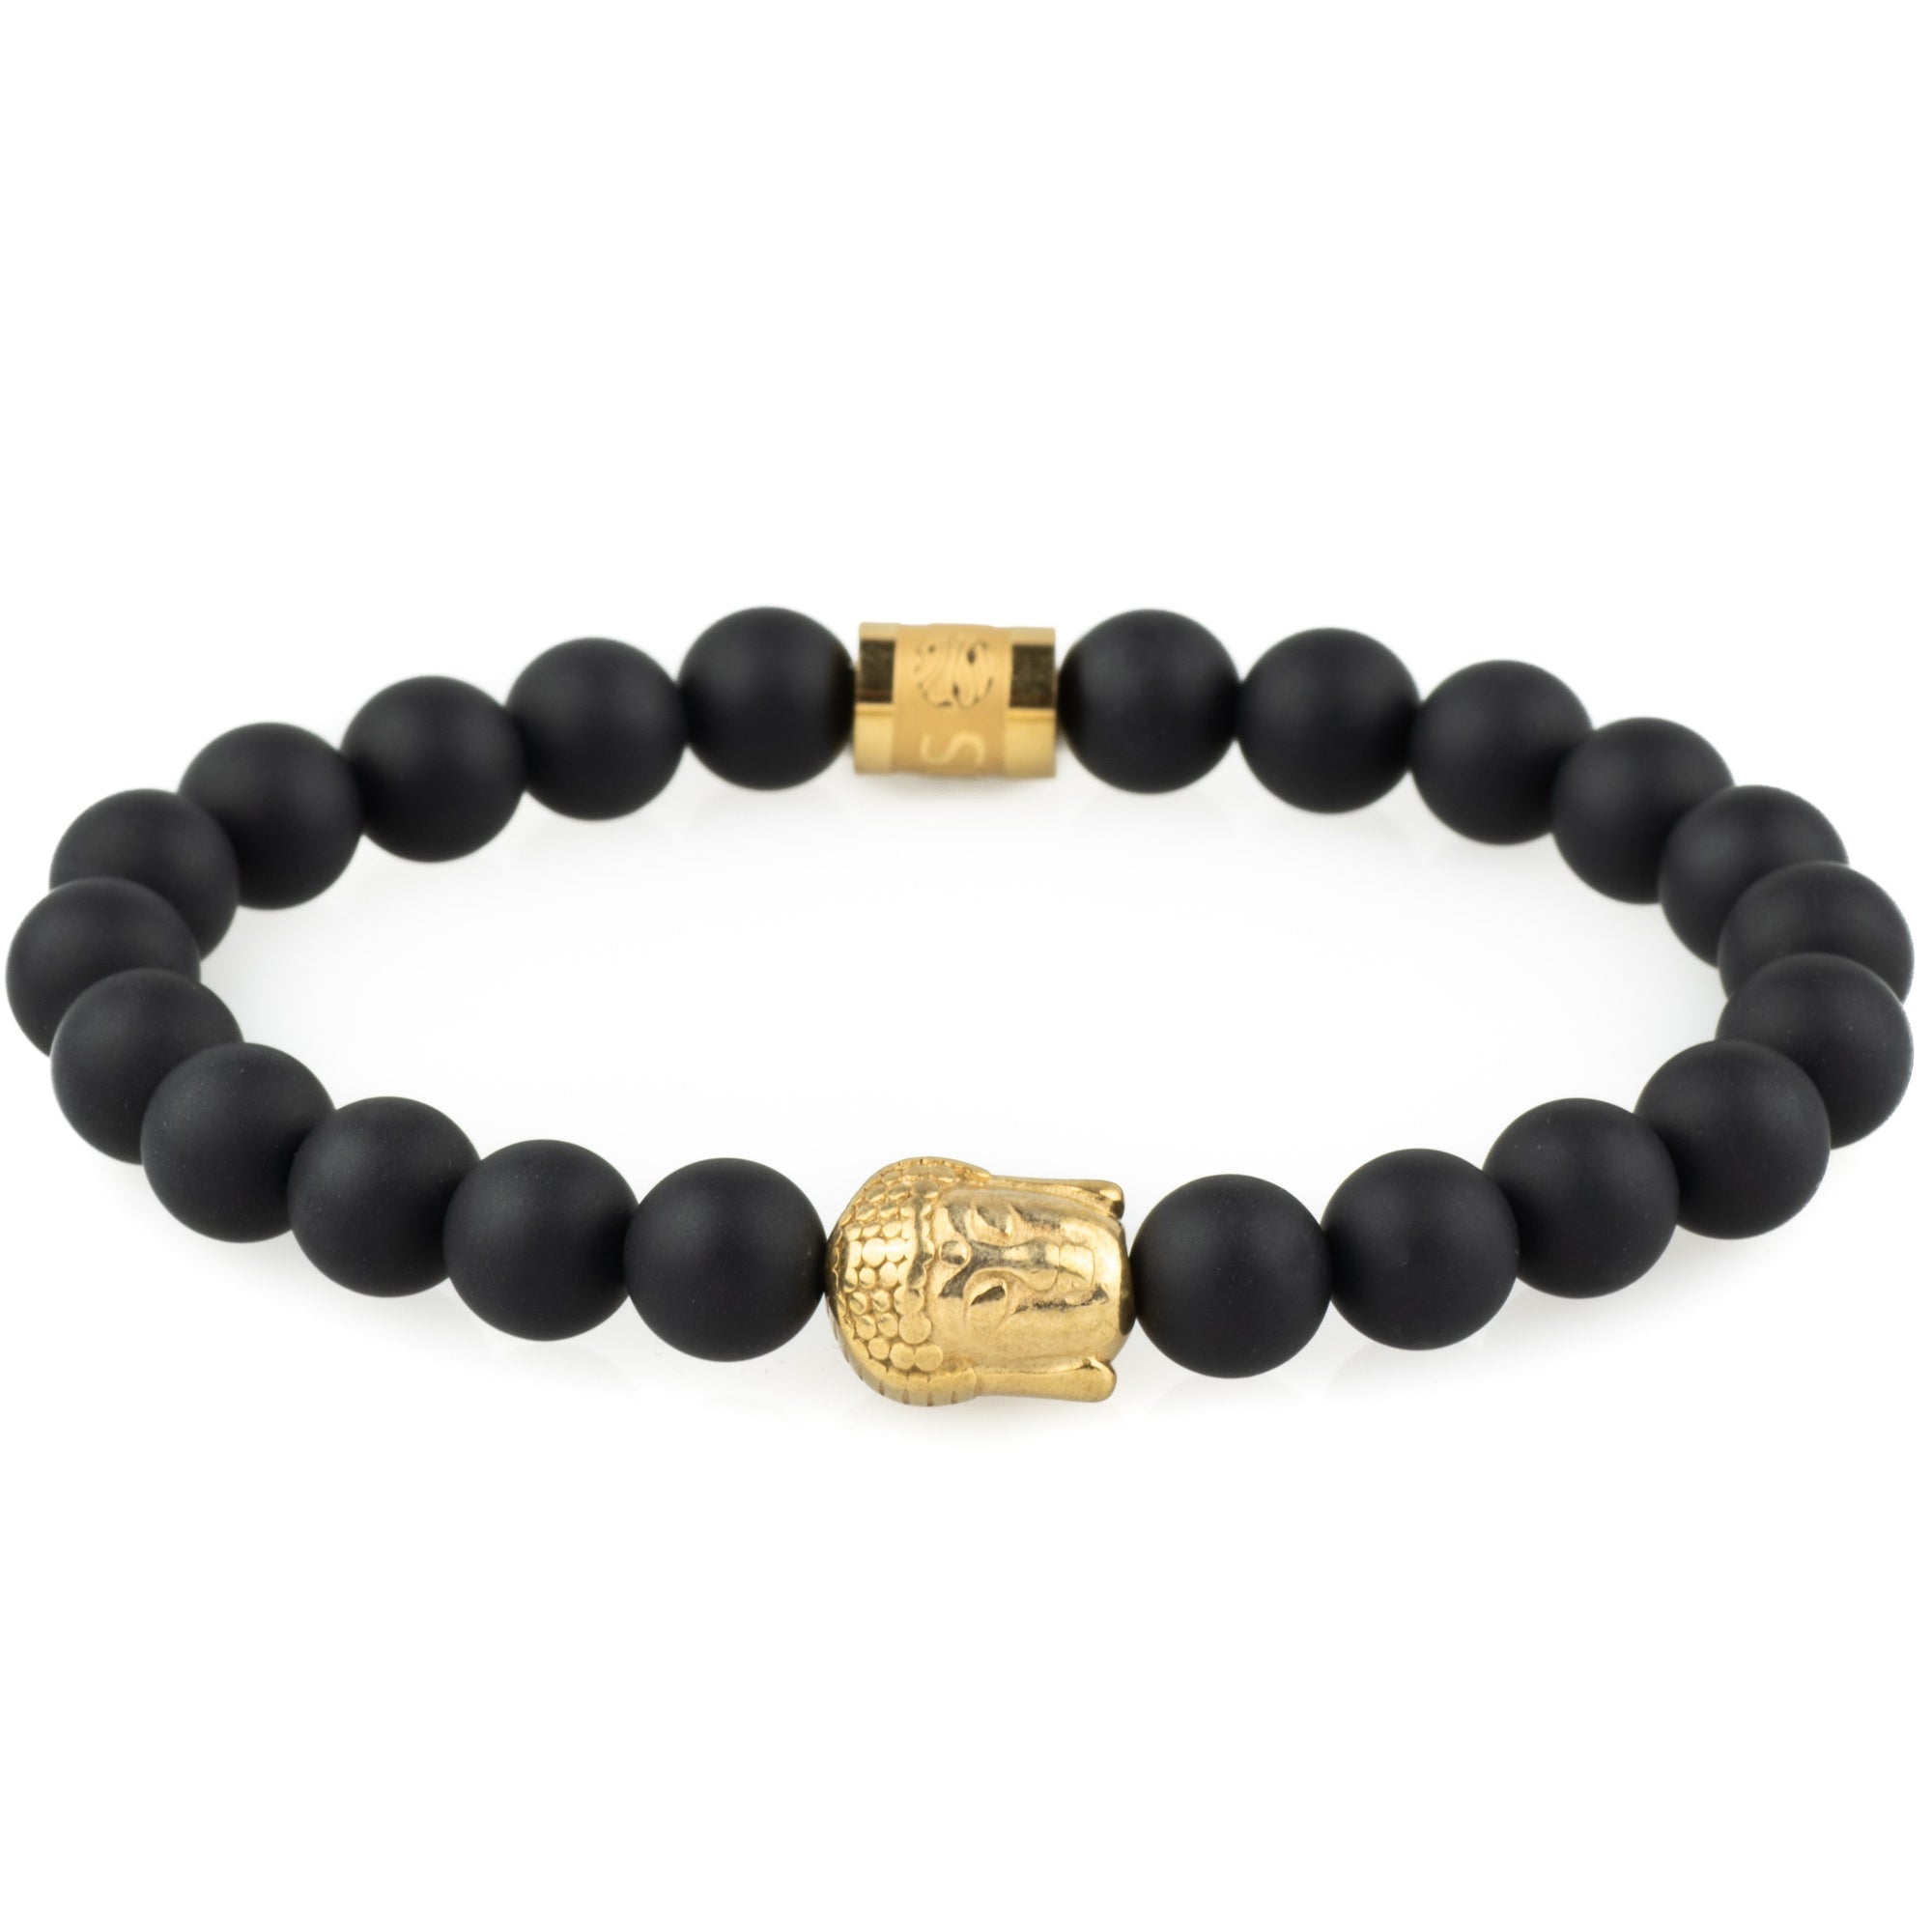 The Buddha Bracelet - Gold - Marssos